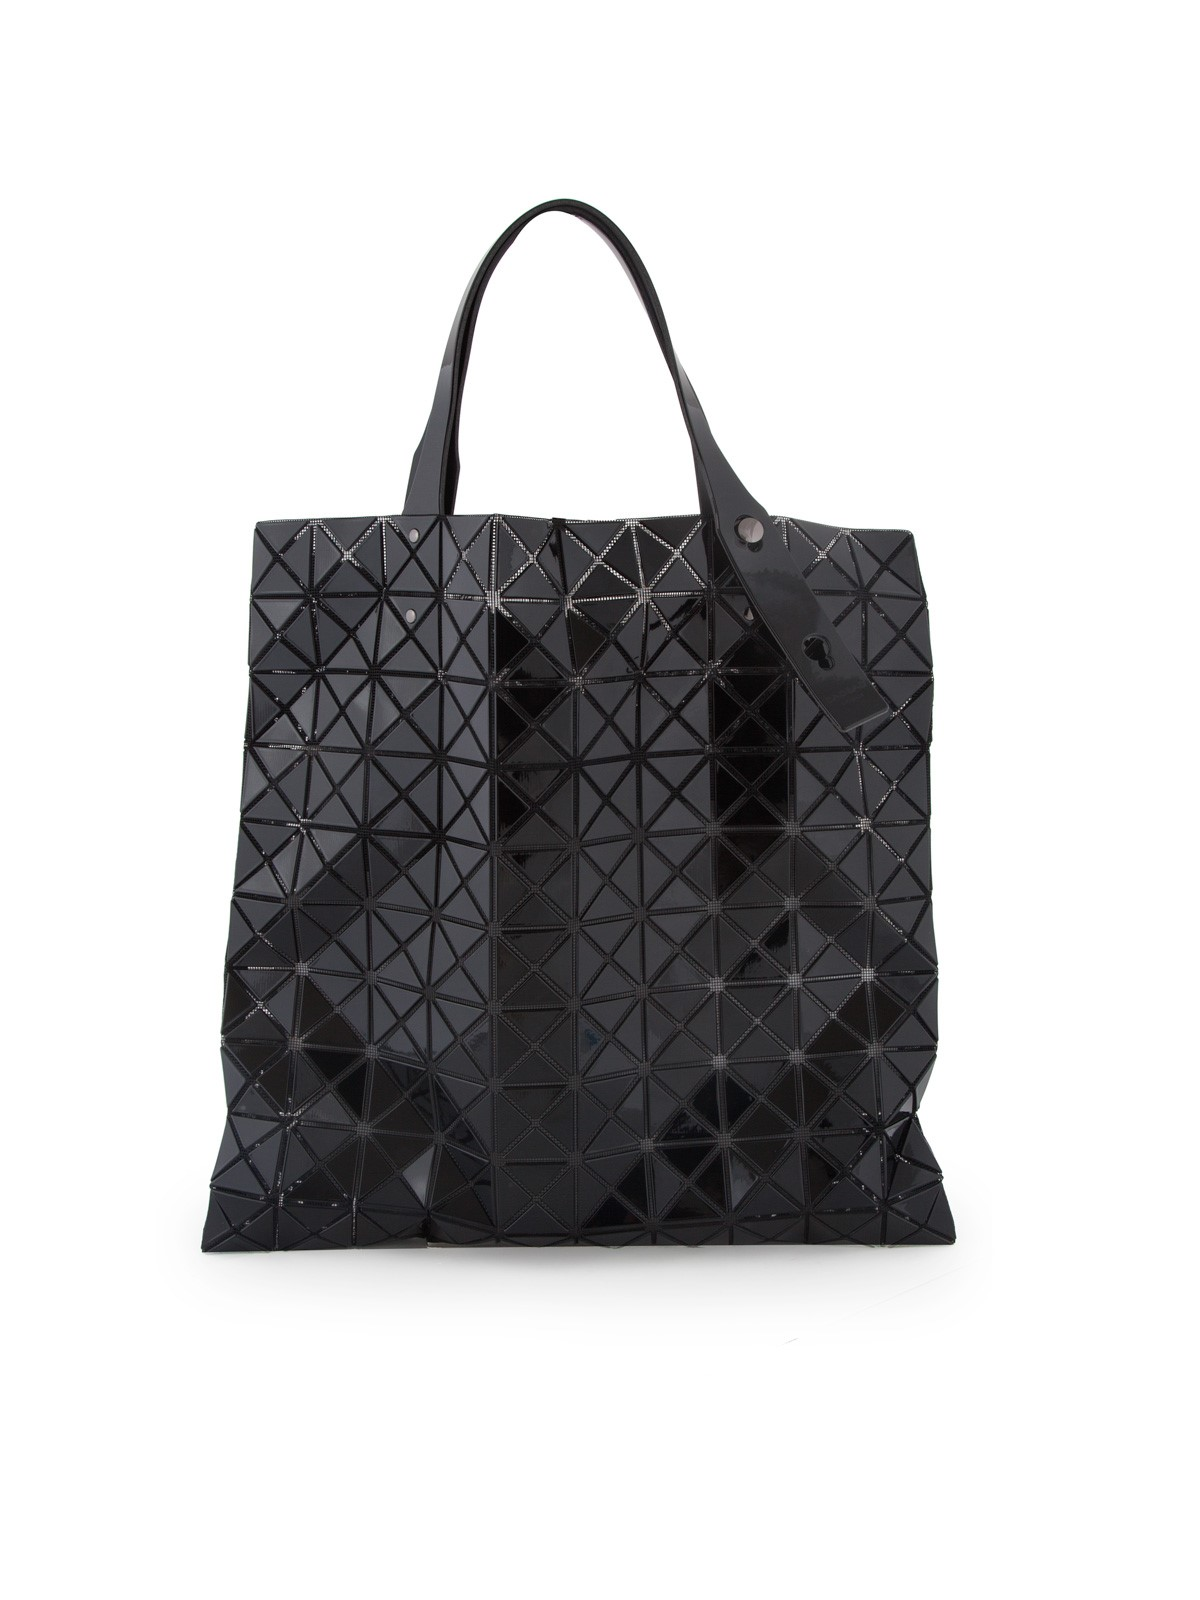 0e2a526c9d53 bao bao issey miyake PRISM TOTE BAG available on montiboutique.com ...